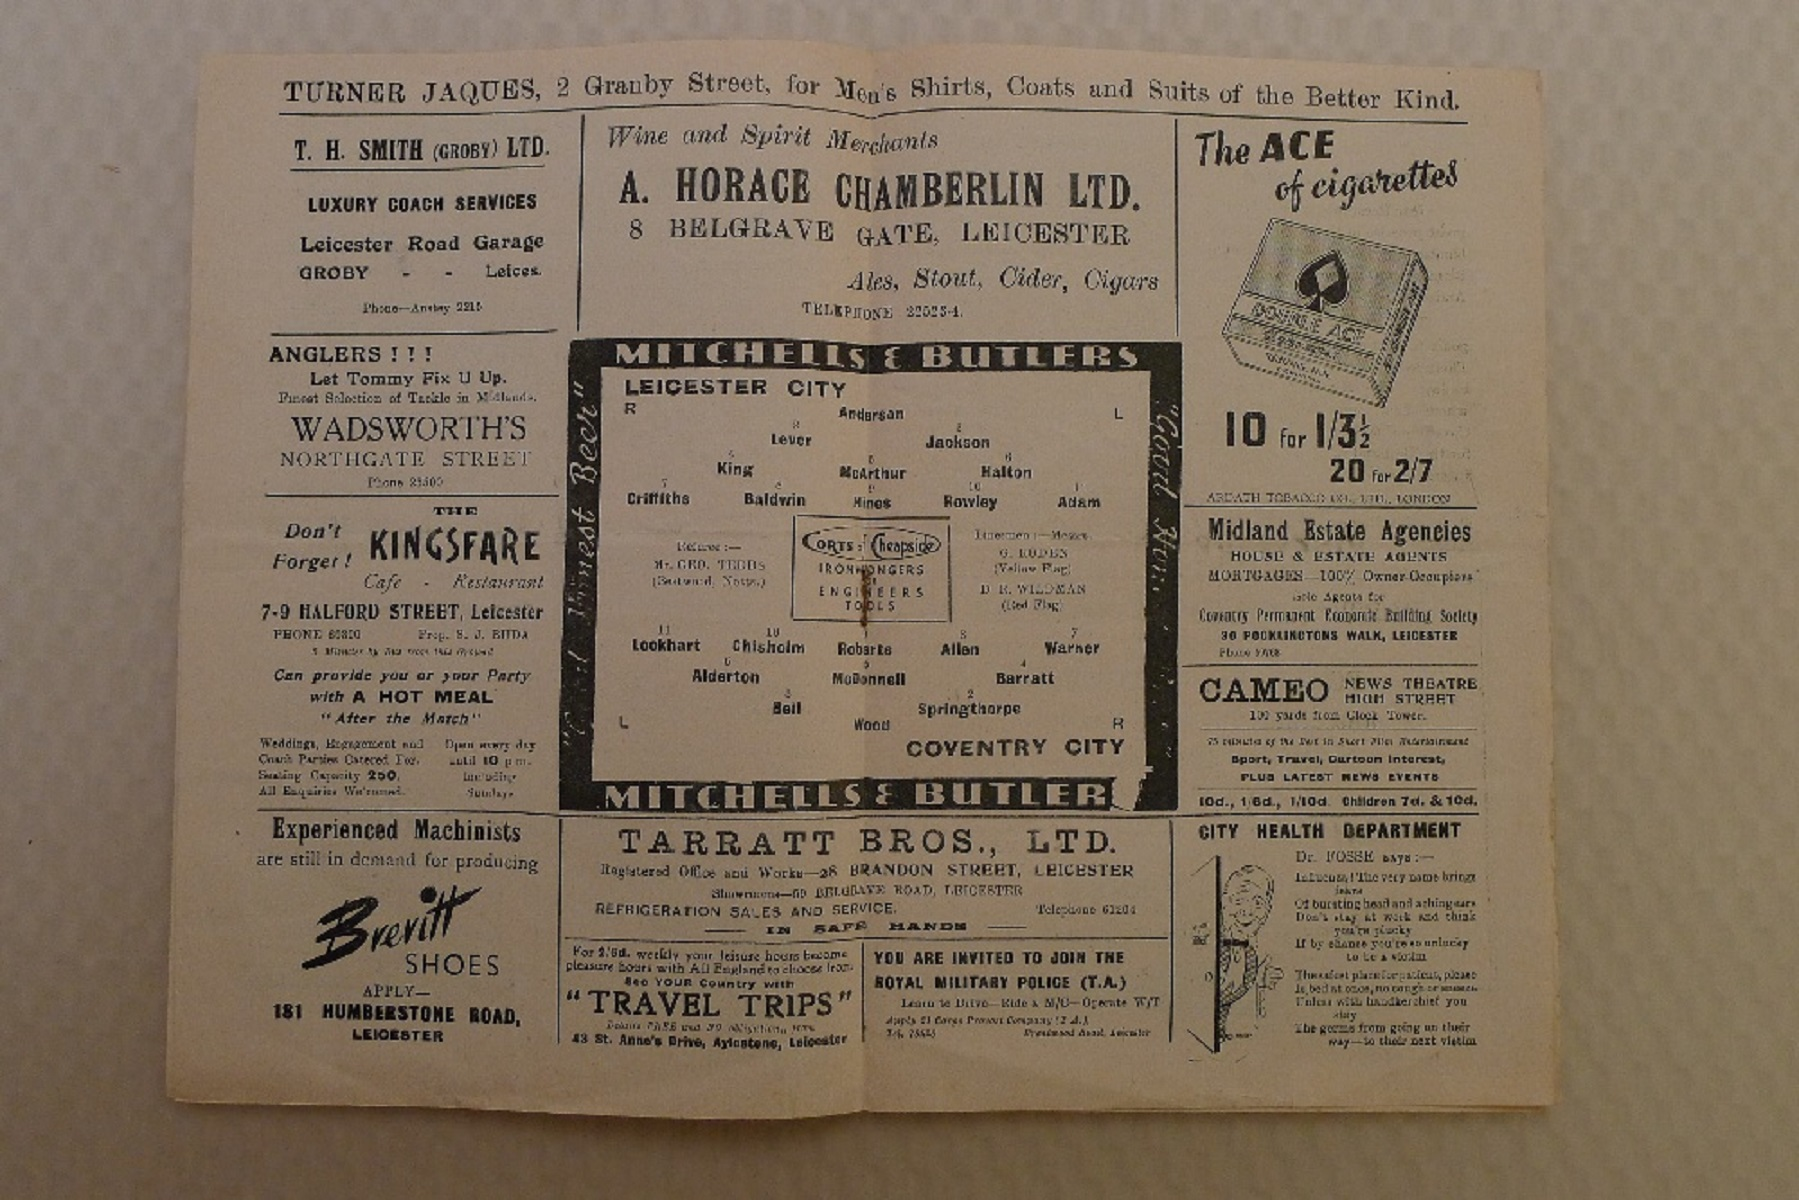 Vintage Football Programmes. 1 x Leicester City v Coventry City February 3rd, 1951, football - Image 2 of 3